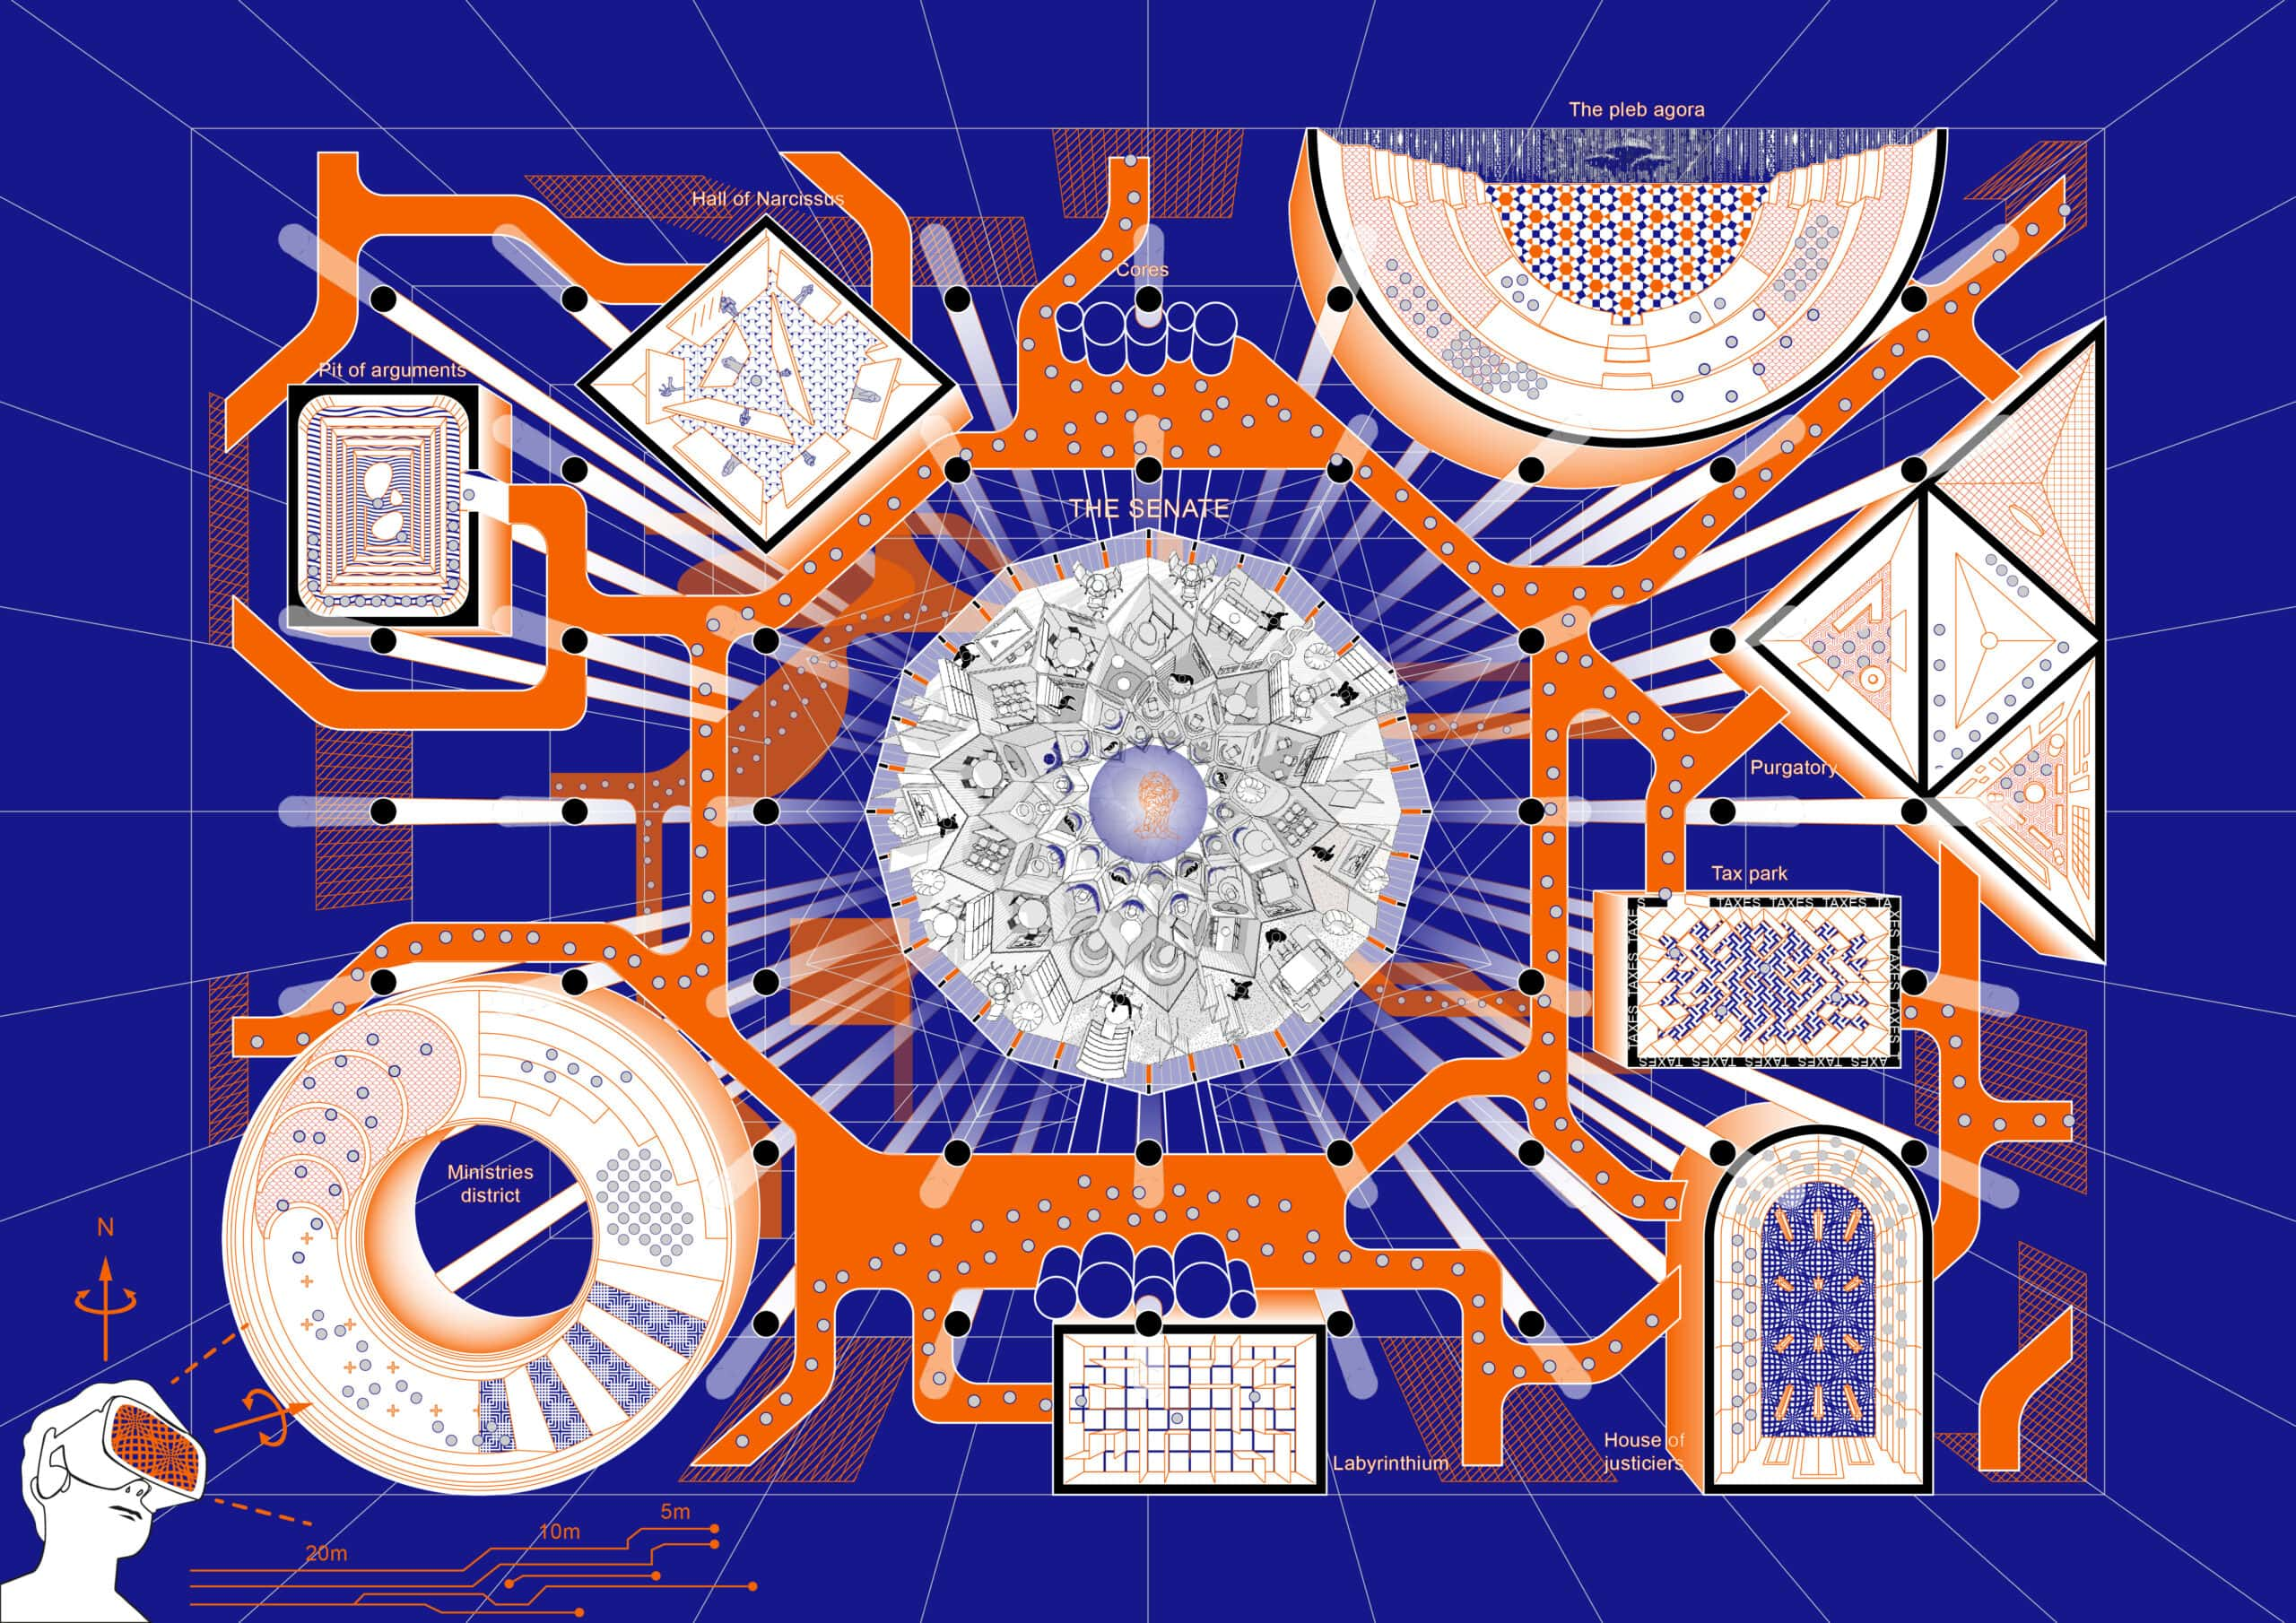 21922_Ballade to democracy_Floorplan